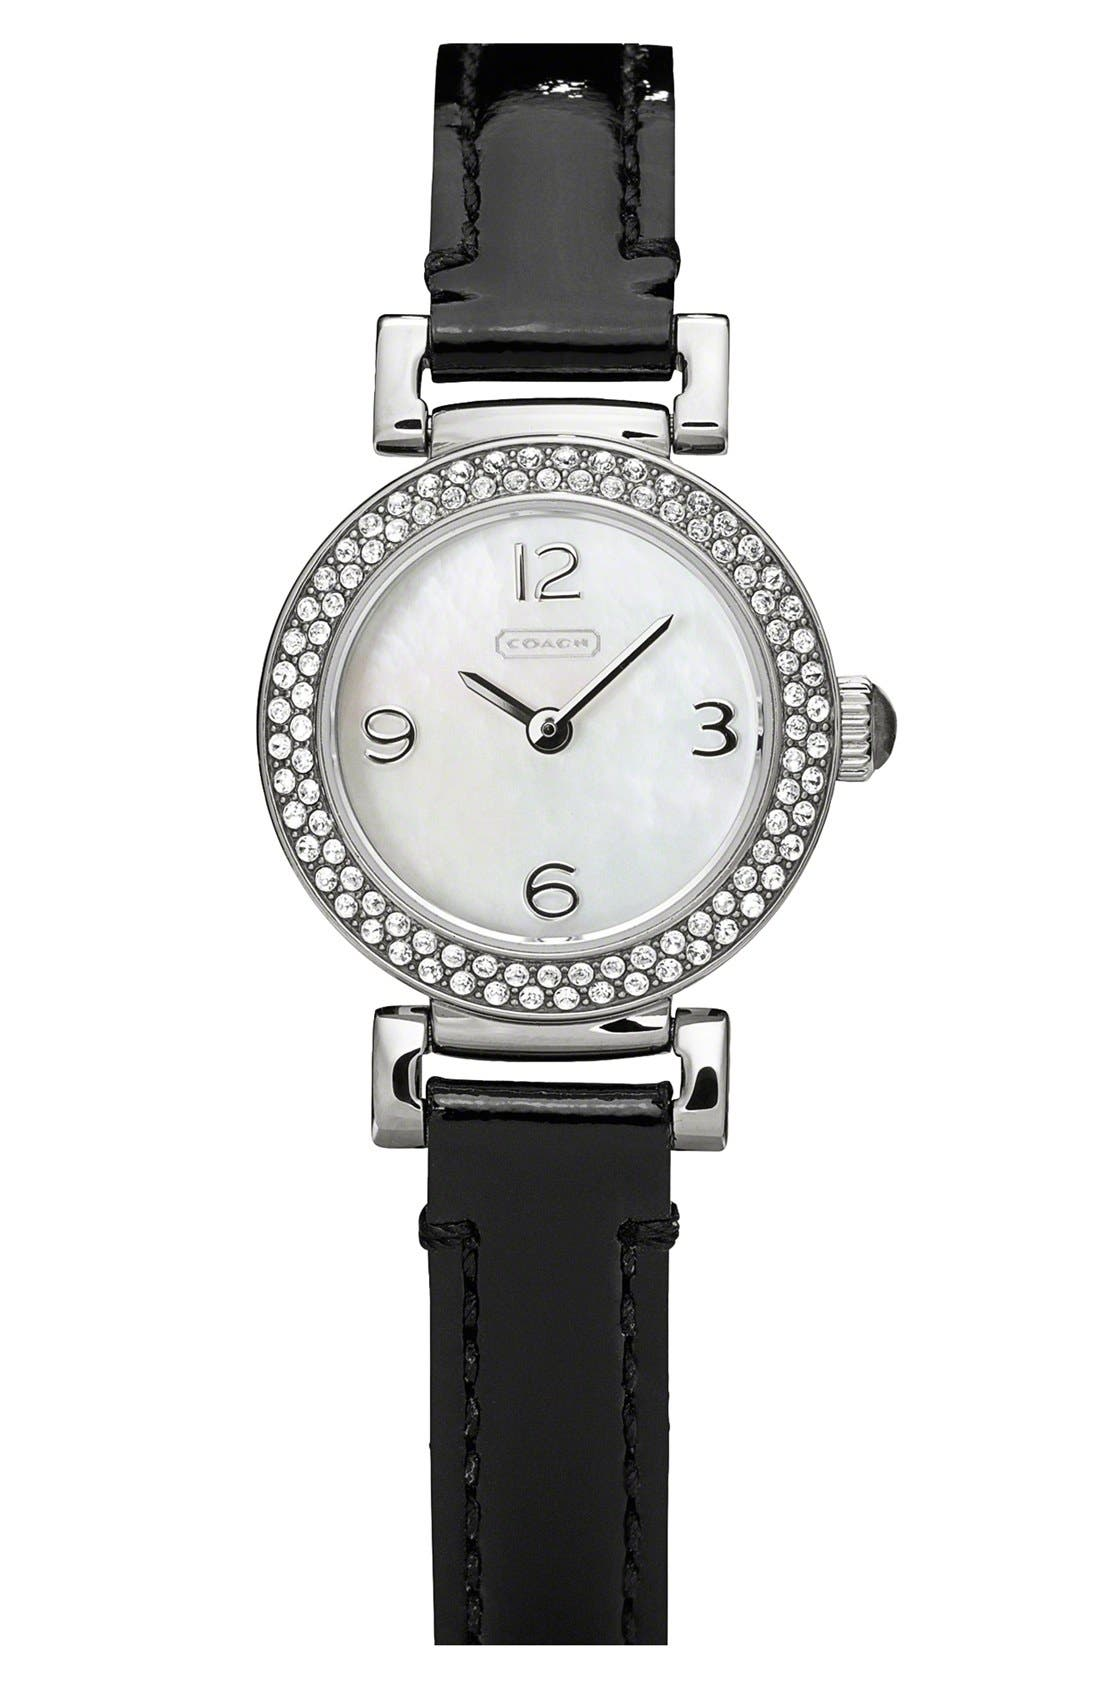 Main Image - COACH 'Madison' Round Crystal Bezel Leather Strap Watch, 23mm